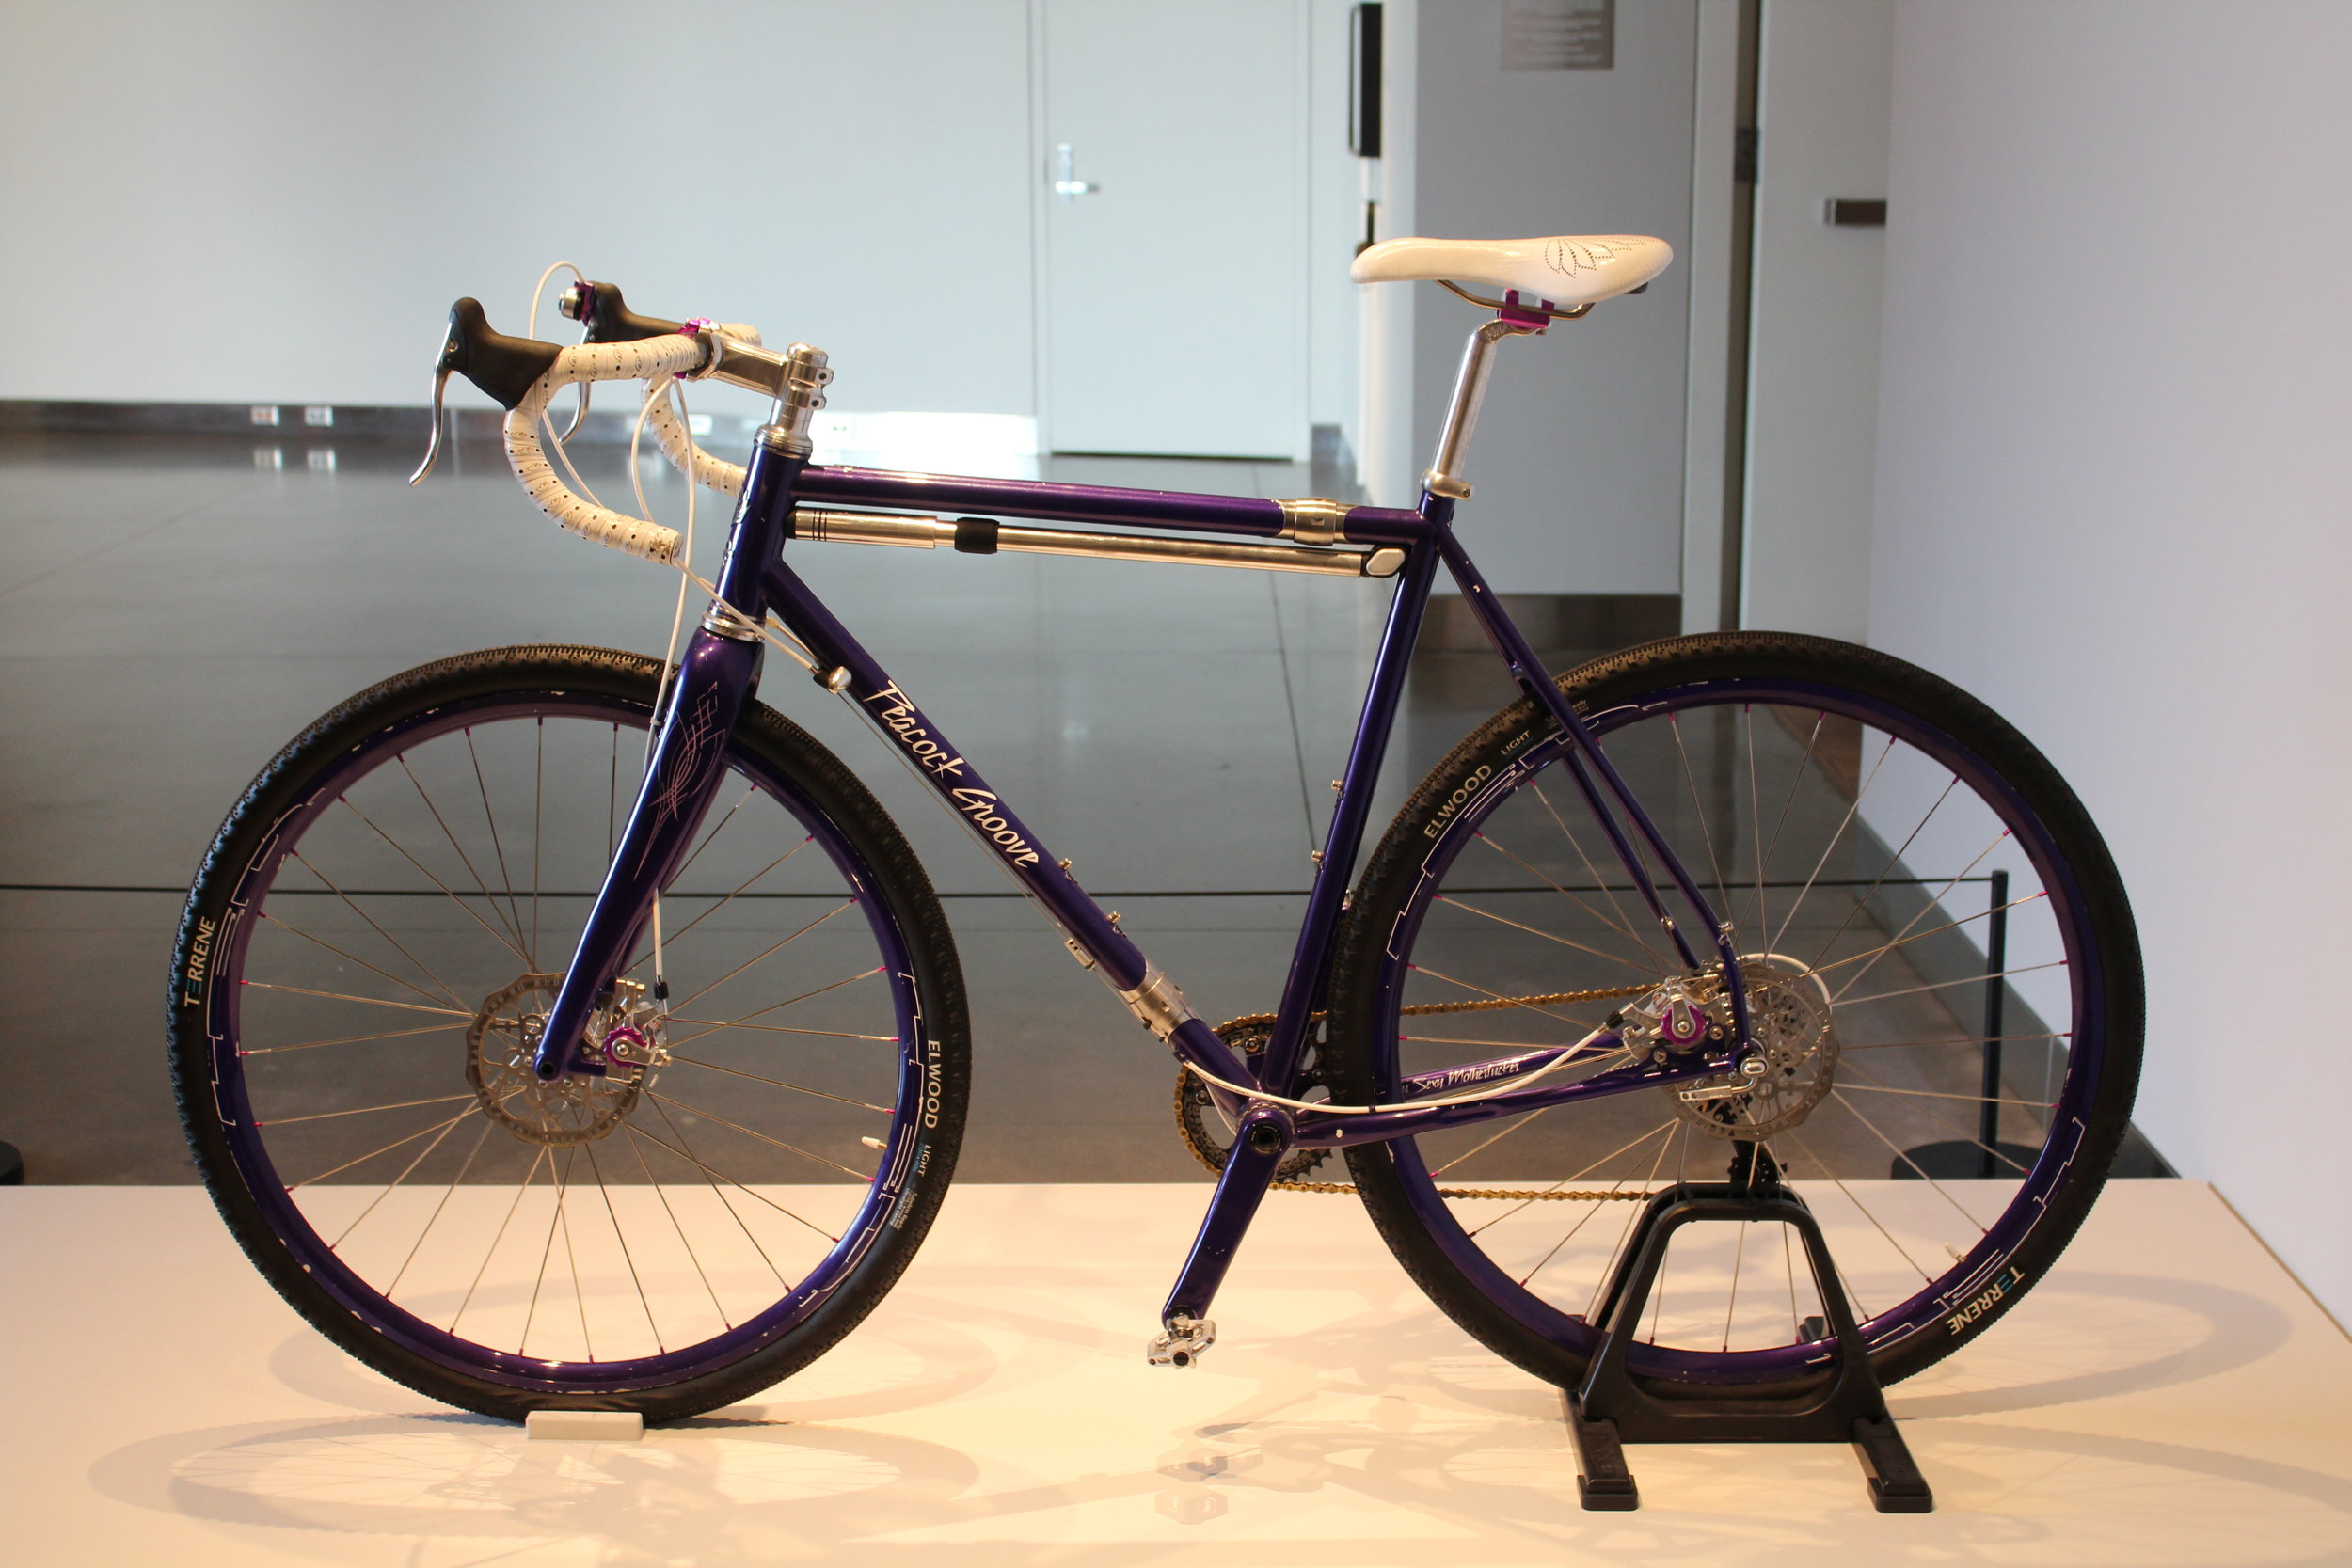 Prince bicycle by independent frame builder, Erik Noren of Peacock Groove; winner of Best in Show and Best Theme Bike at the 2017 North American Handmade Bicycle Show.